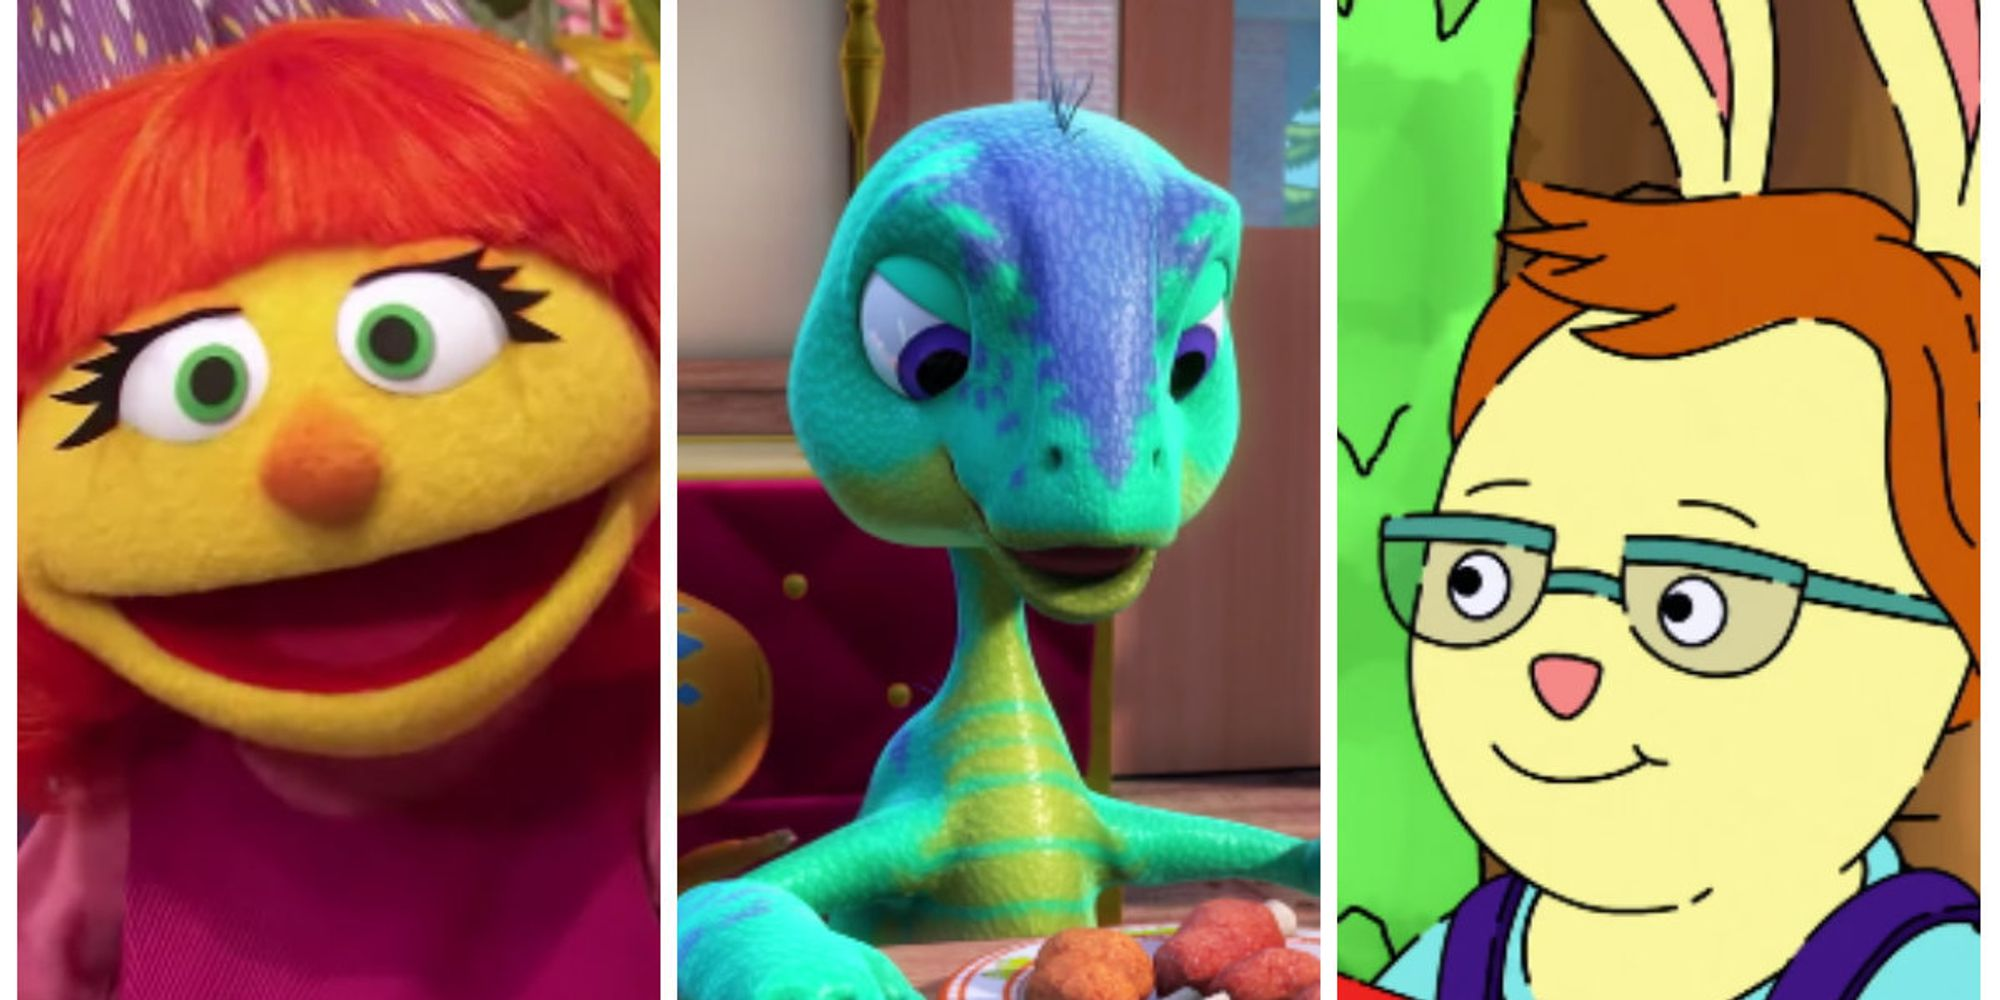 PBS Kids Marks Autism Awareness Month With Characters On The Spectrum